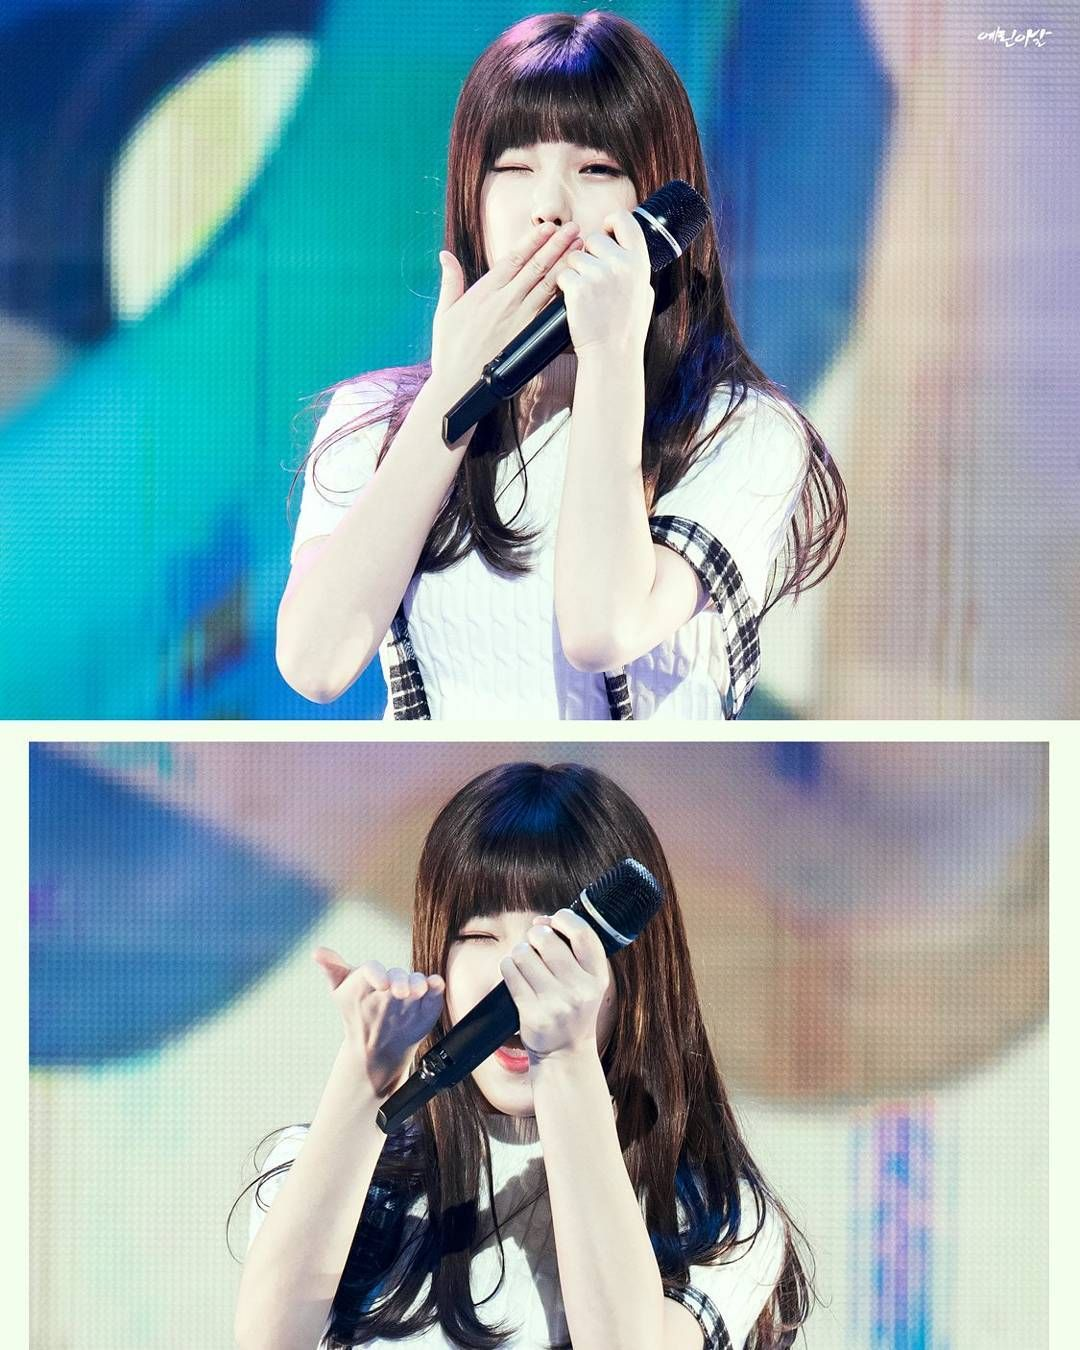 Ready for baby blonde Jung Yerin 😚😚😚😚 (con imágenes)